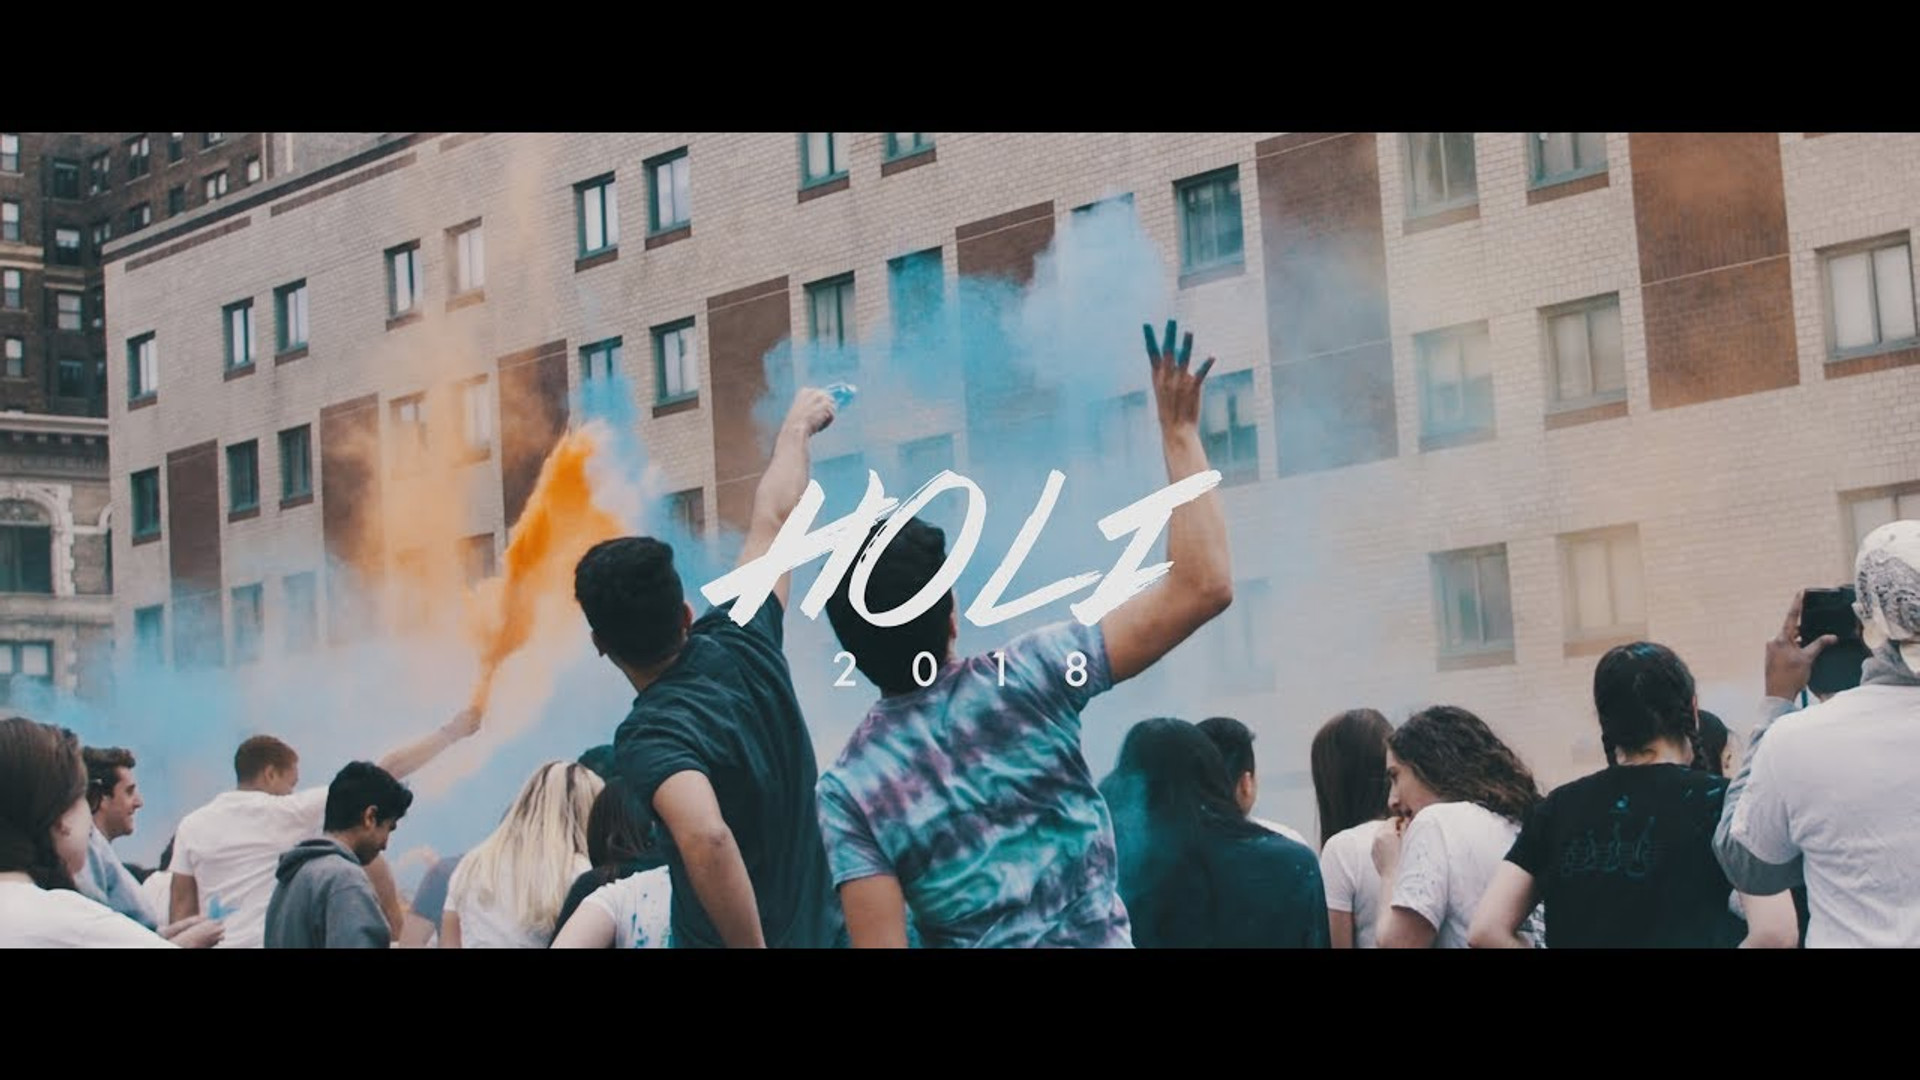 Holi 2018 | Columbia University | GH5 + Sigma 18-35mm